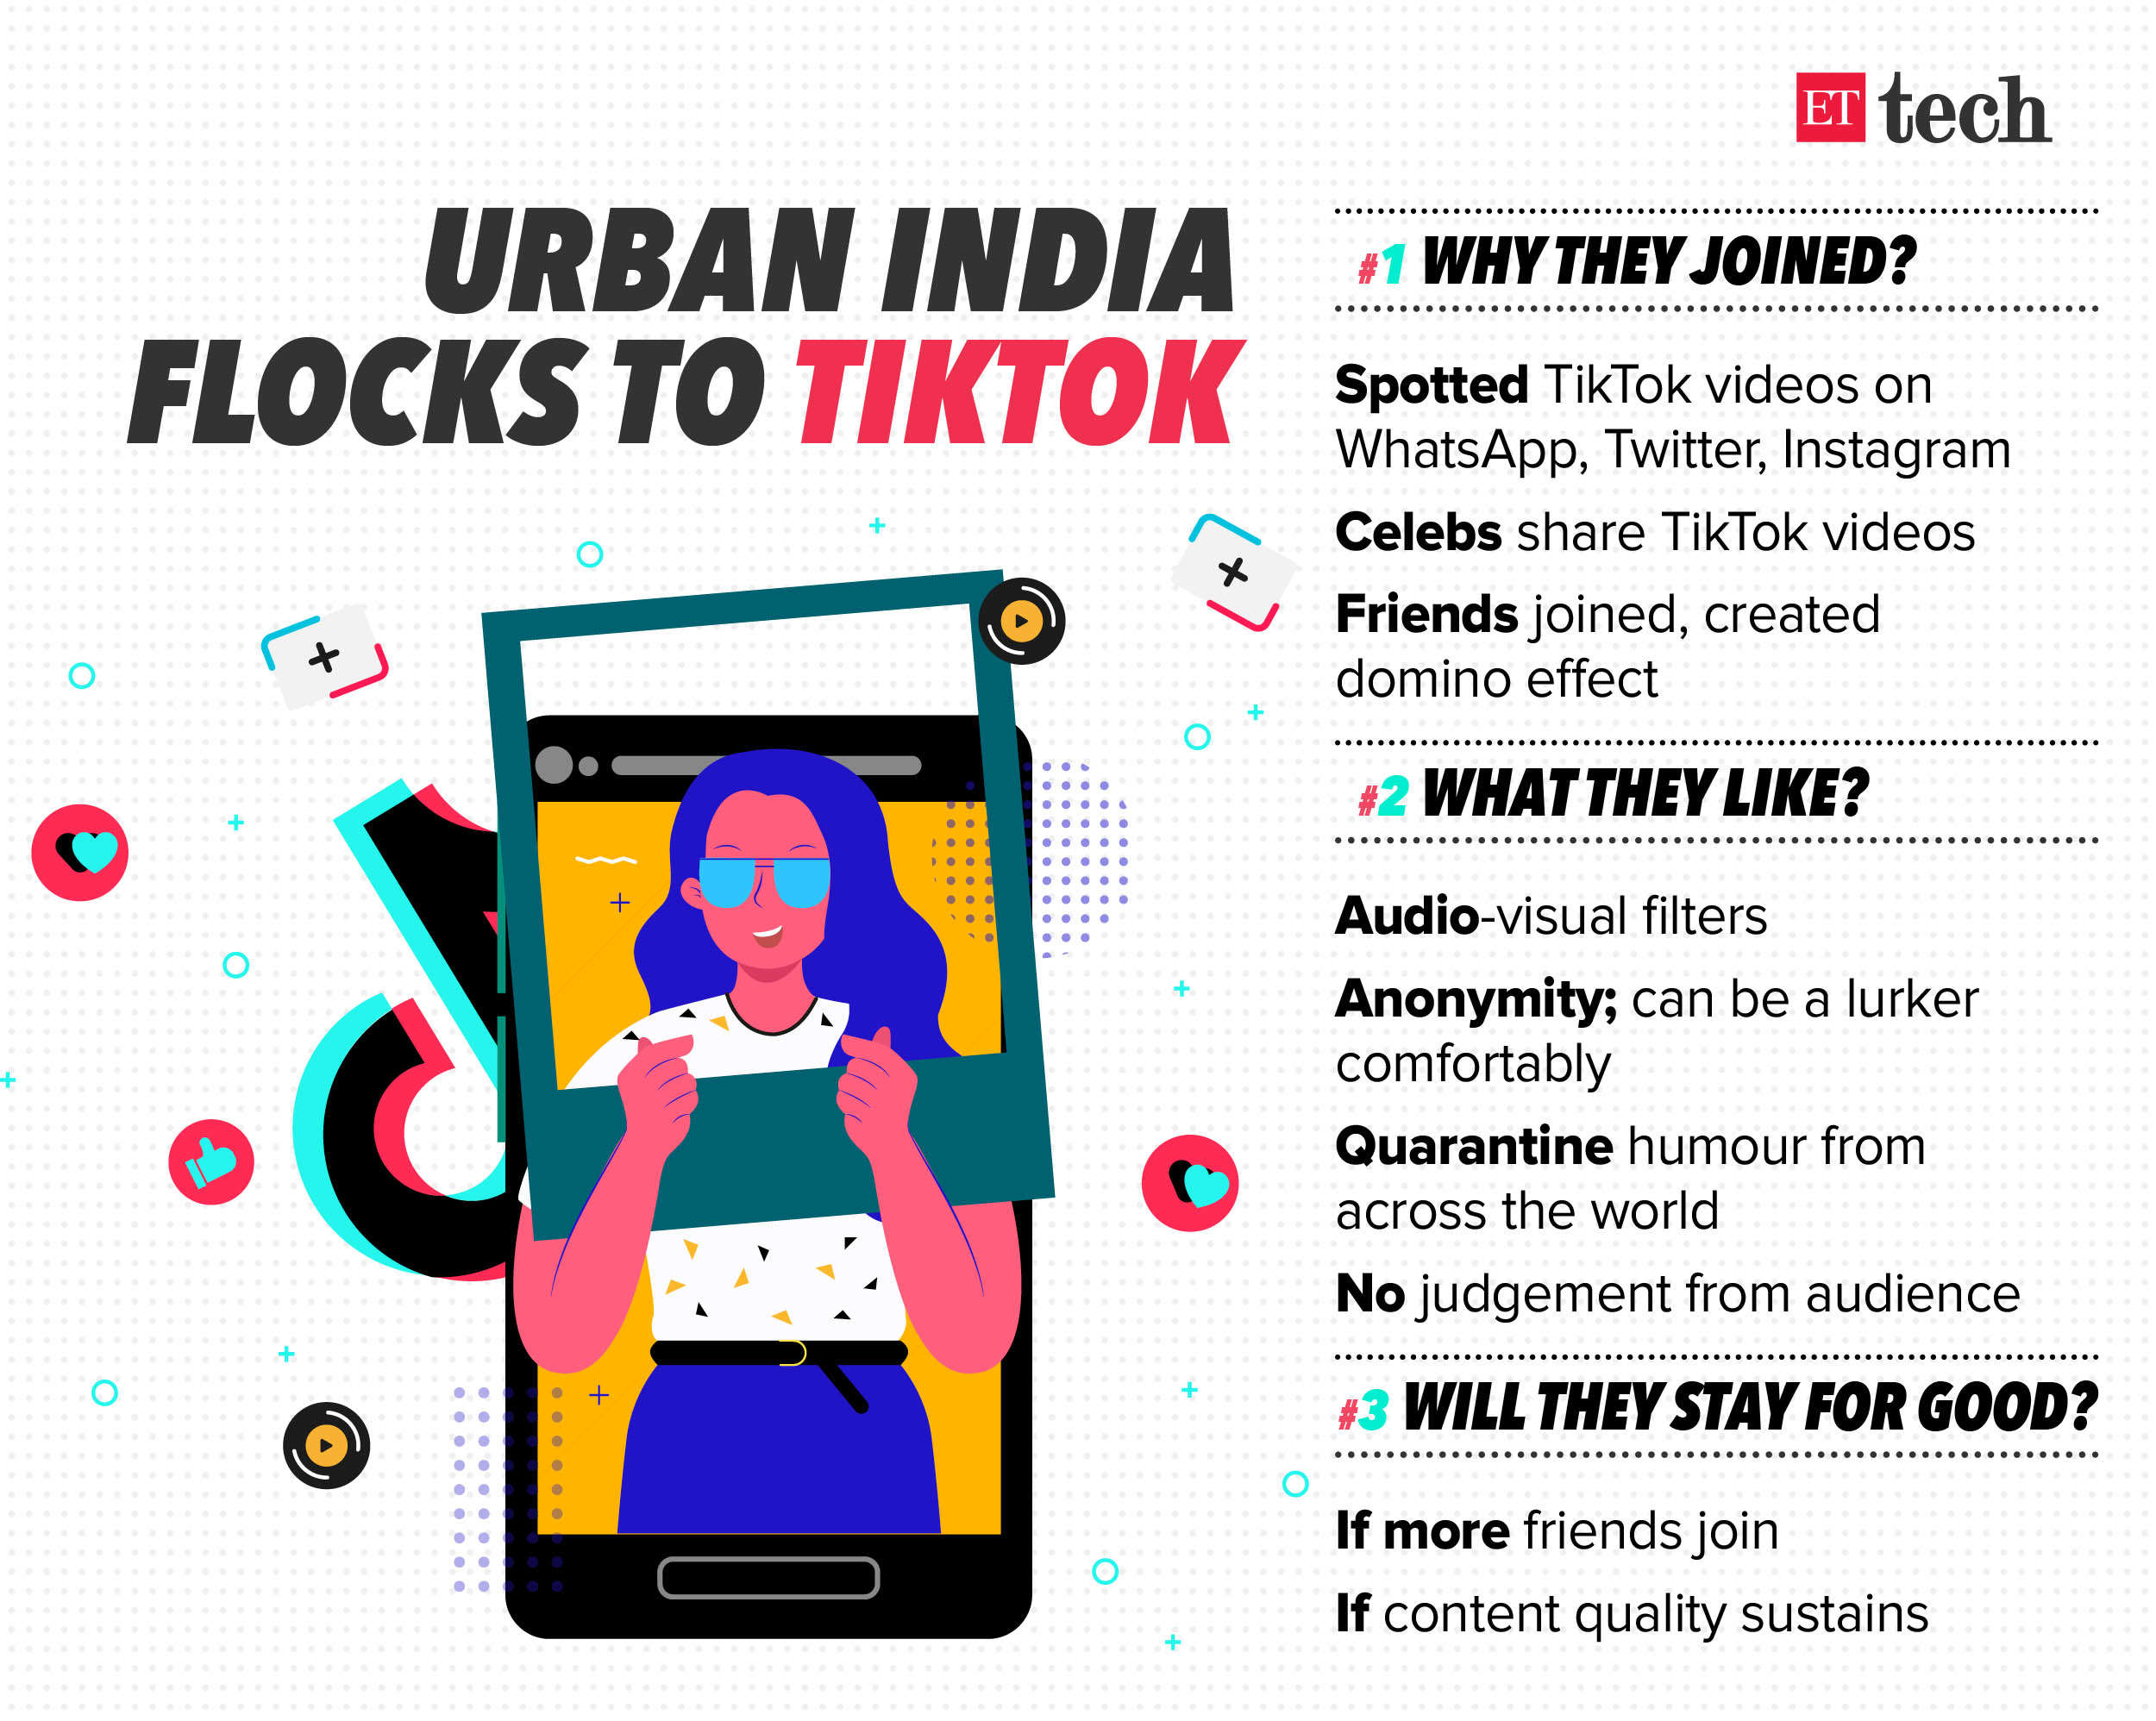 At a time when most other social media platforms—like Twitter, Facebook, and WhatsApp—are saddled with negative or fake news, homebound urbanites are finding an escape from their anxieties in TikTok videos. (Graphic: Rahul Awasthi)